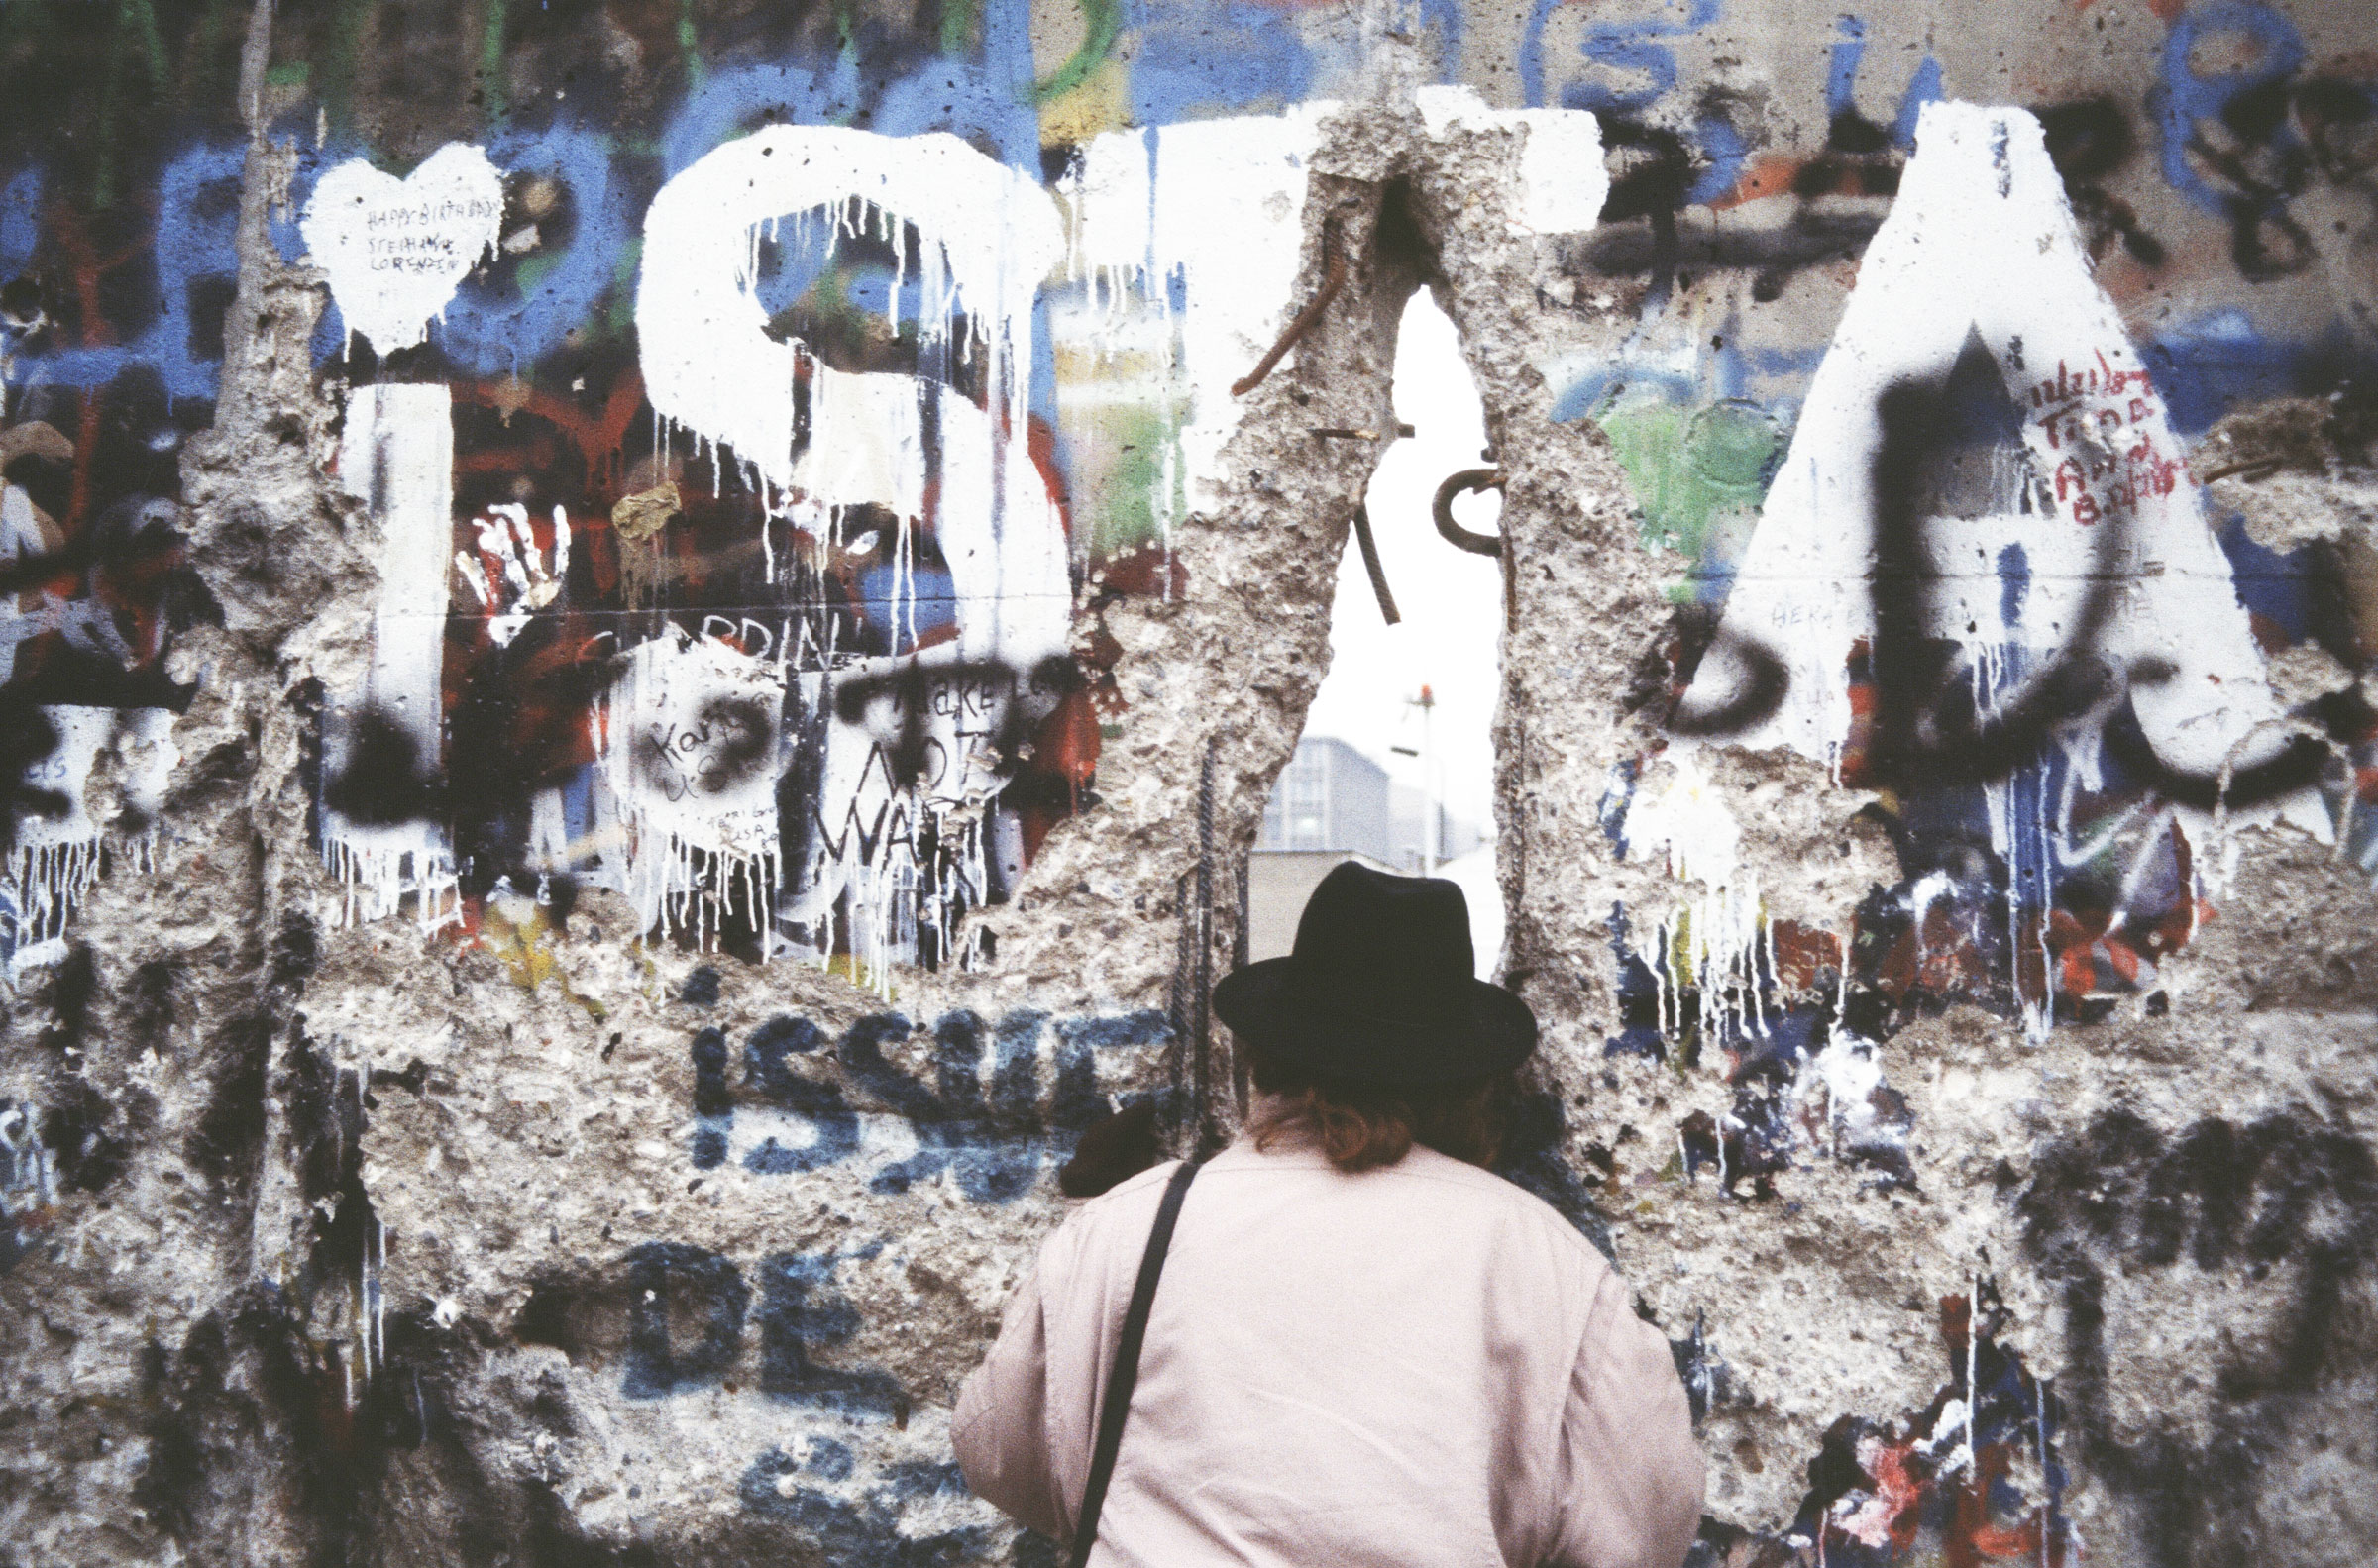 A woman looks through a hole in the Berlin Wall.